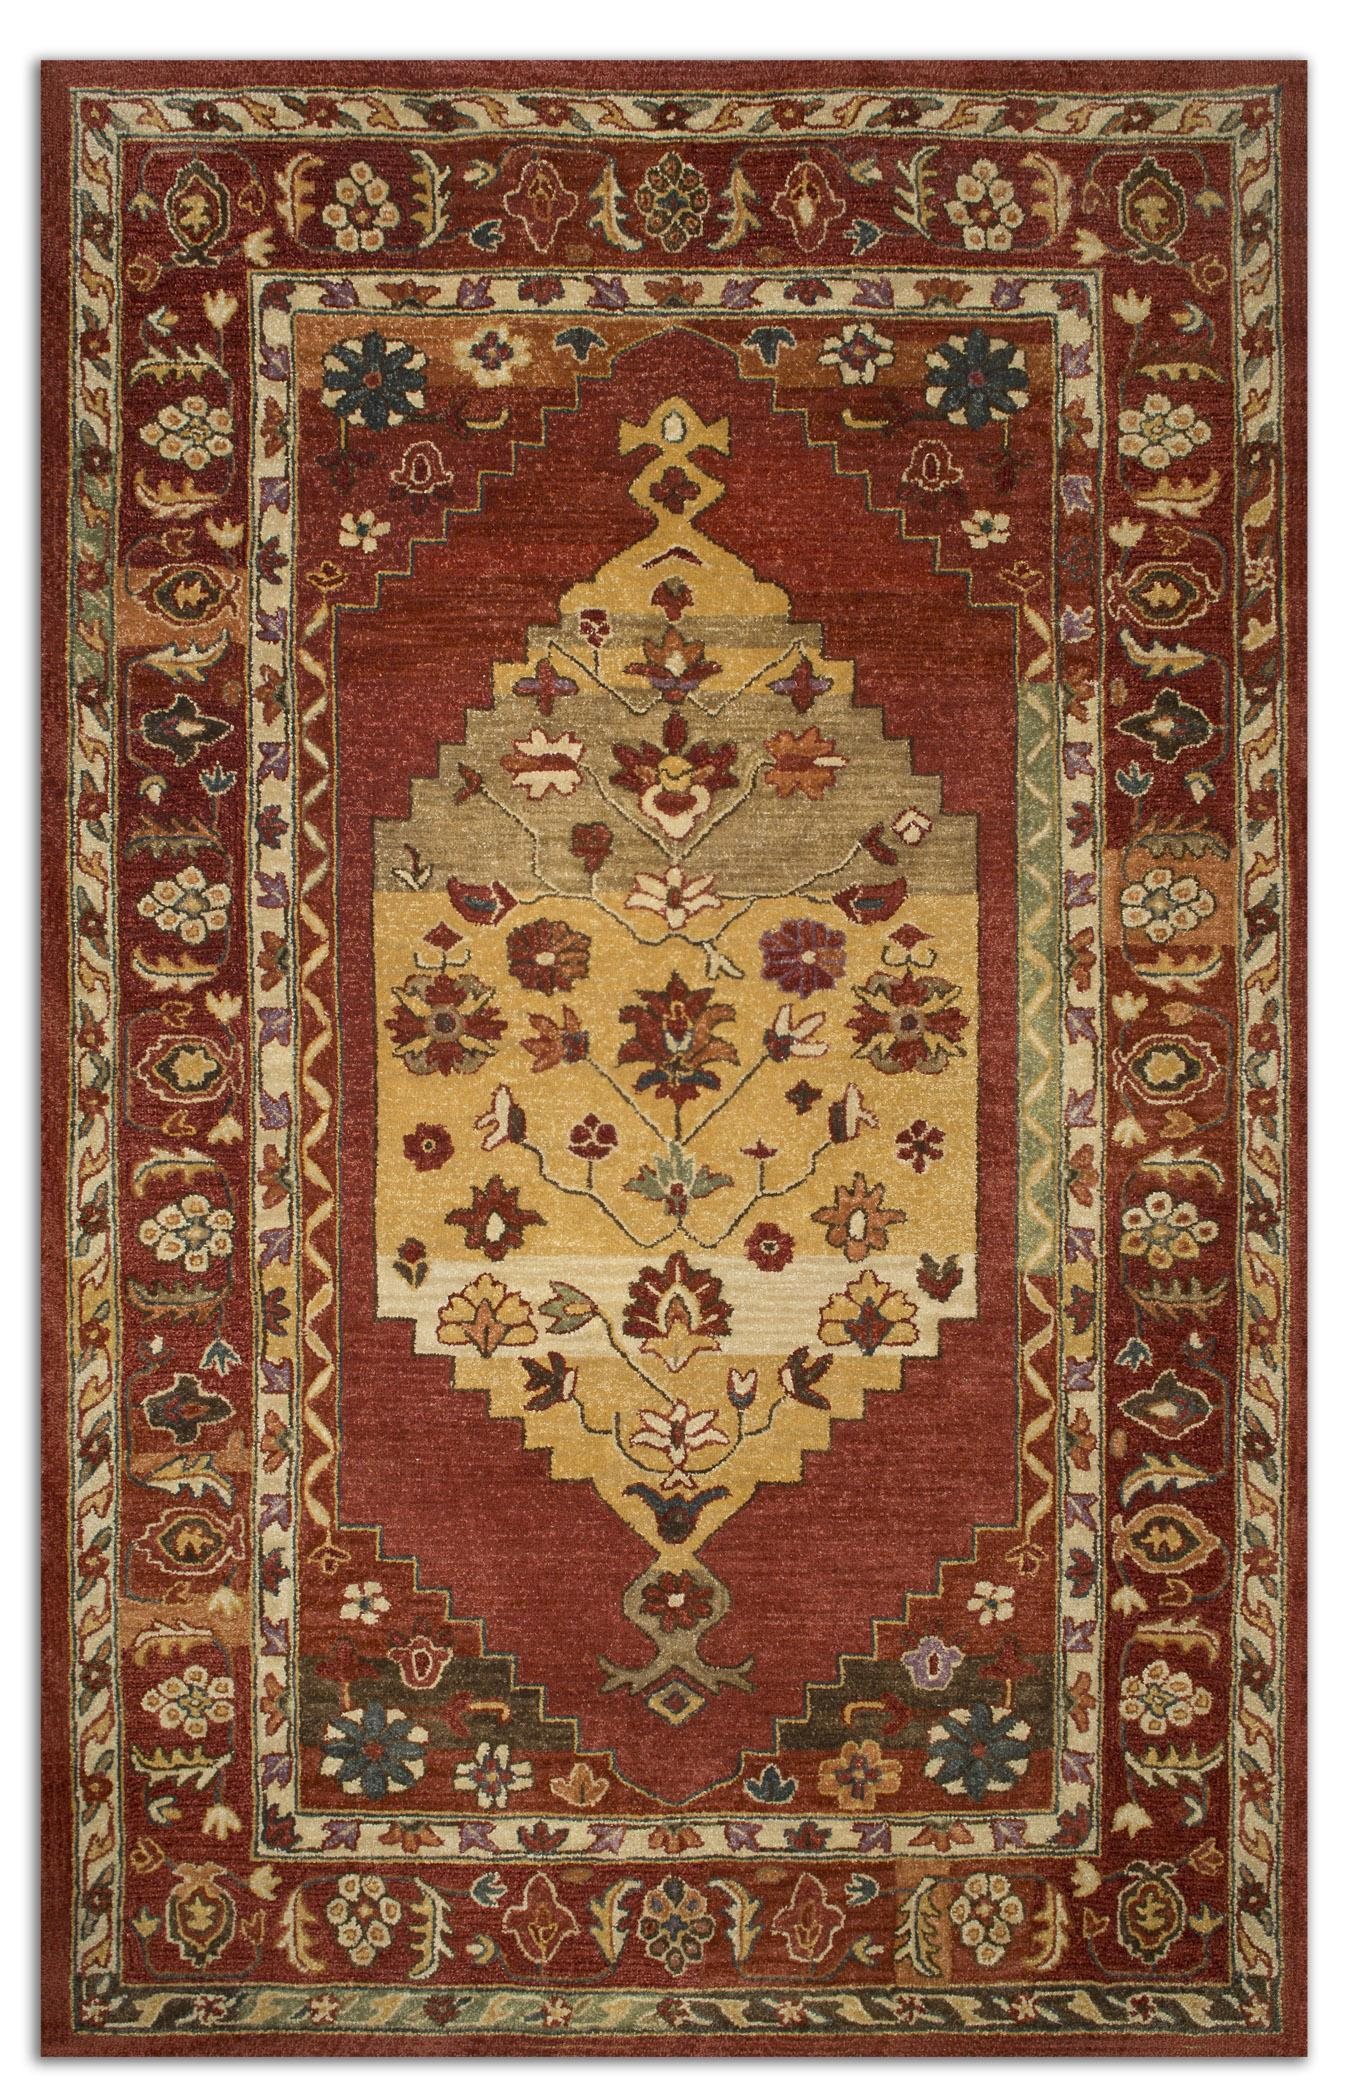 Uttermost Rugs Estelle 8 X 10 Rug - Red - Item Number: 73056-8